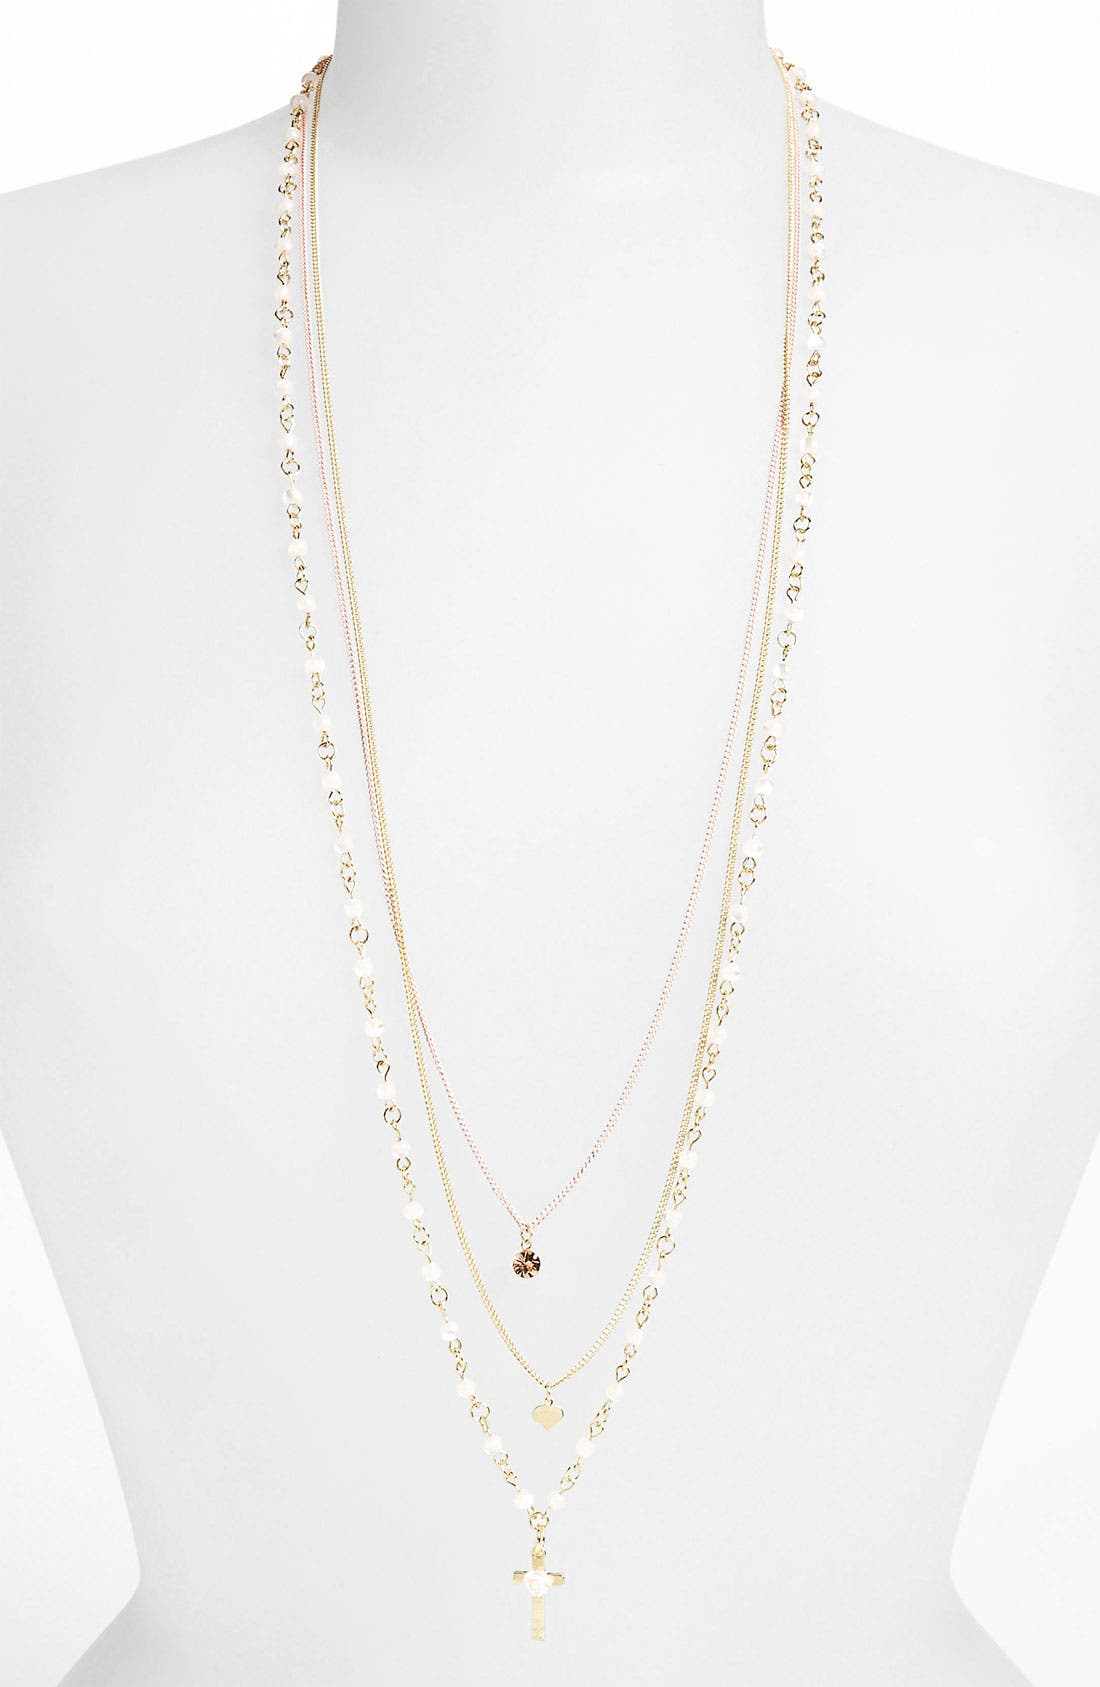 TOPSHOP,                             '3 Row Charm' Multistrand Necklace,                             Main thumbnail 1, color,                             951